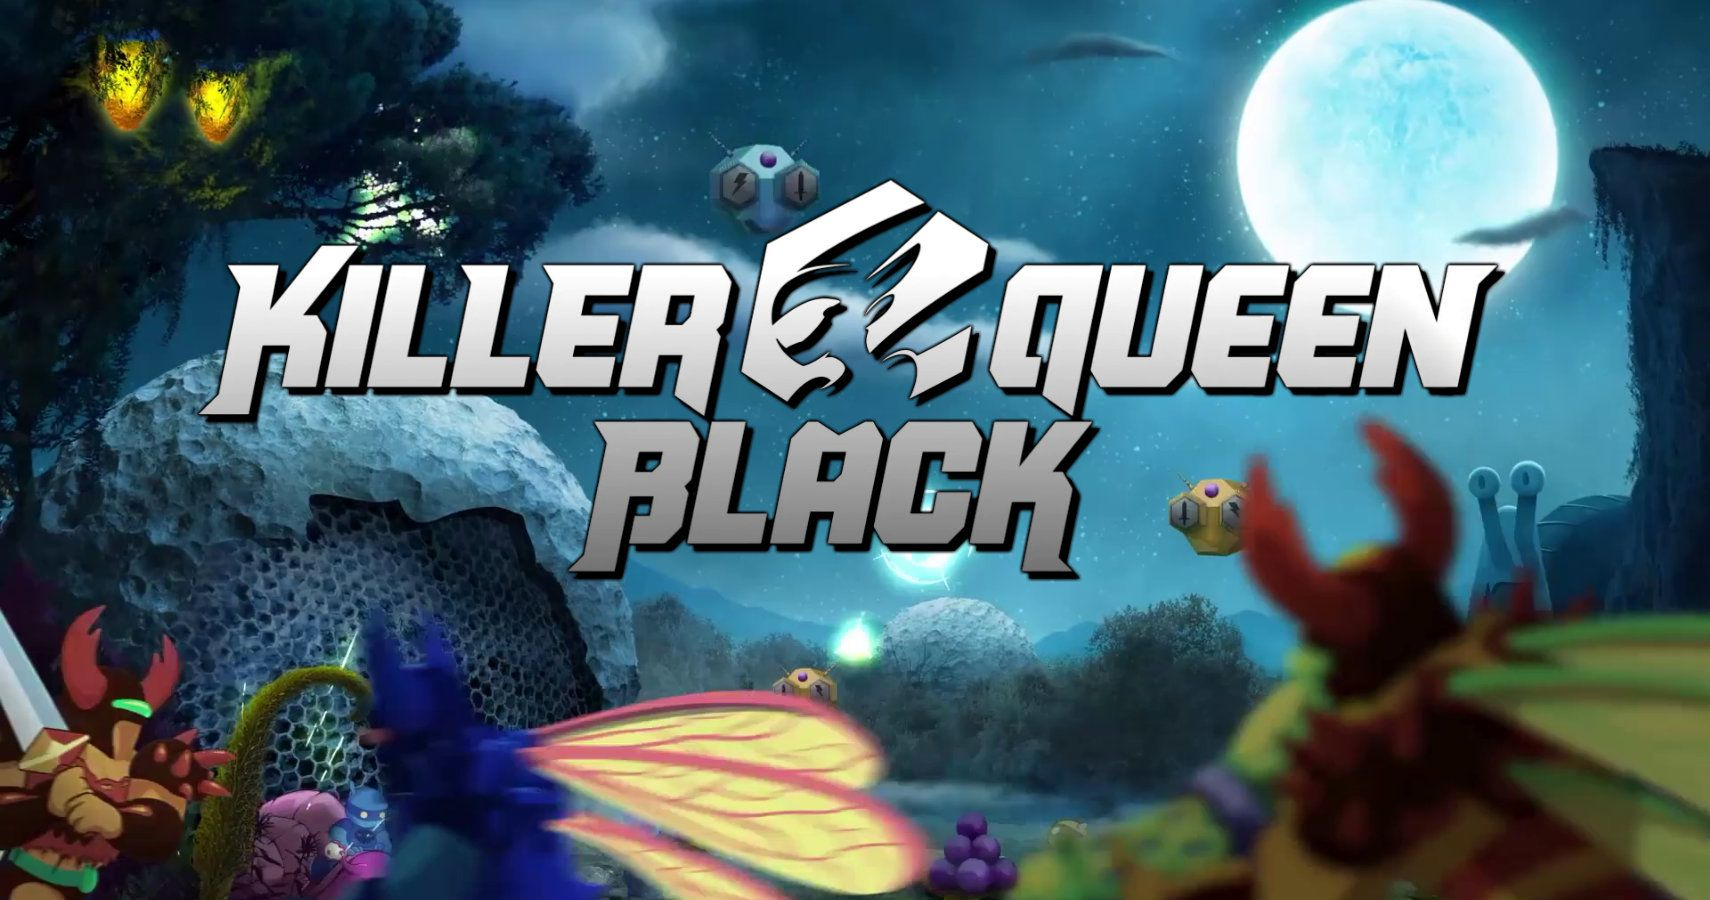 Rare And Amazing Arcade Game 'Killer Queen' Gets October